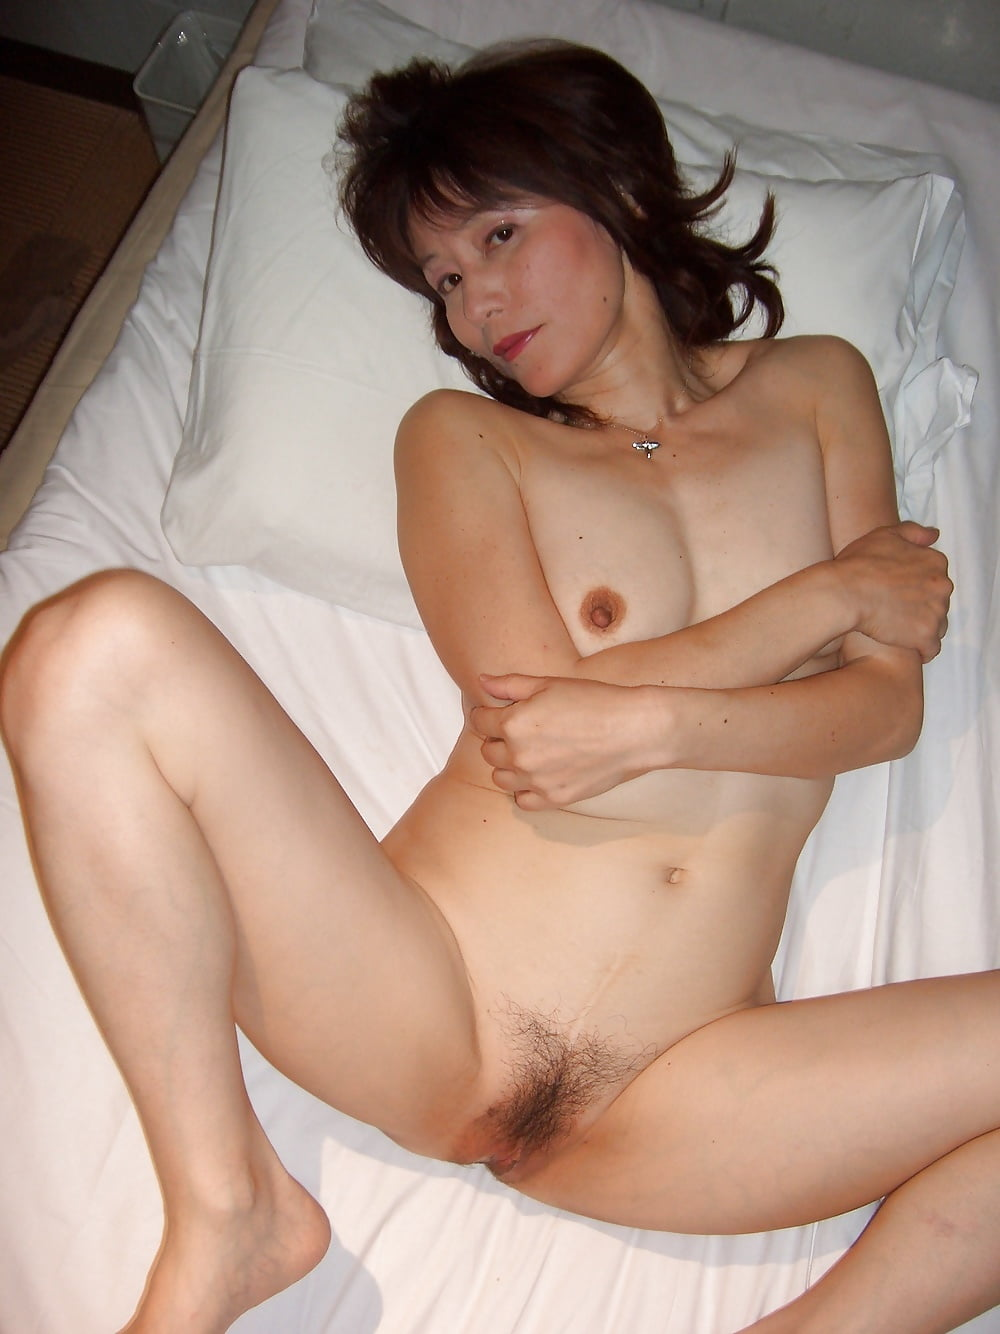 Middle aged asian women nude 10